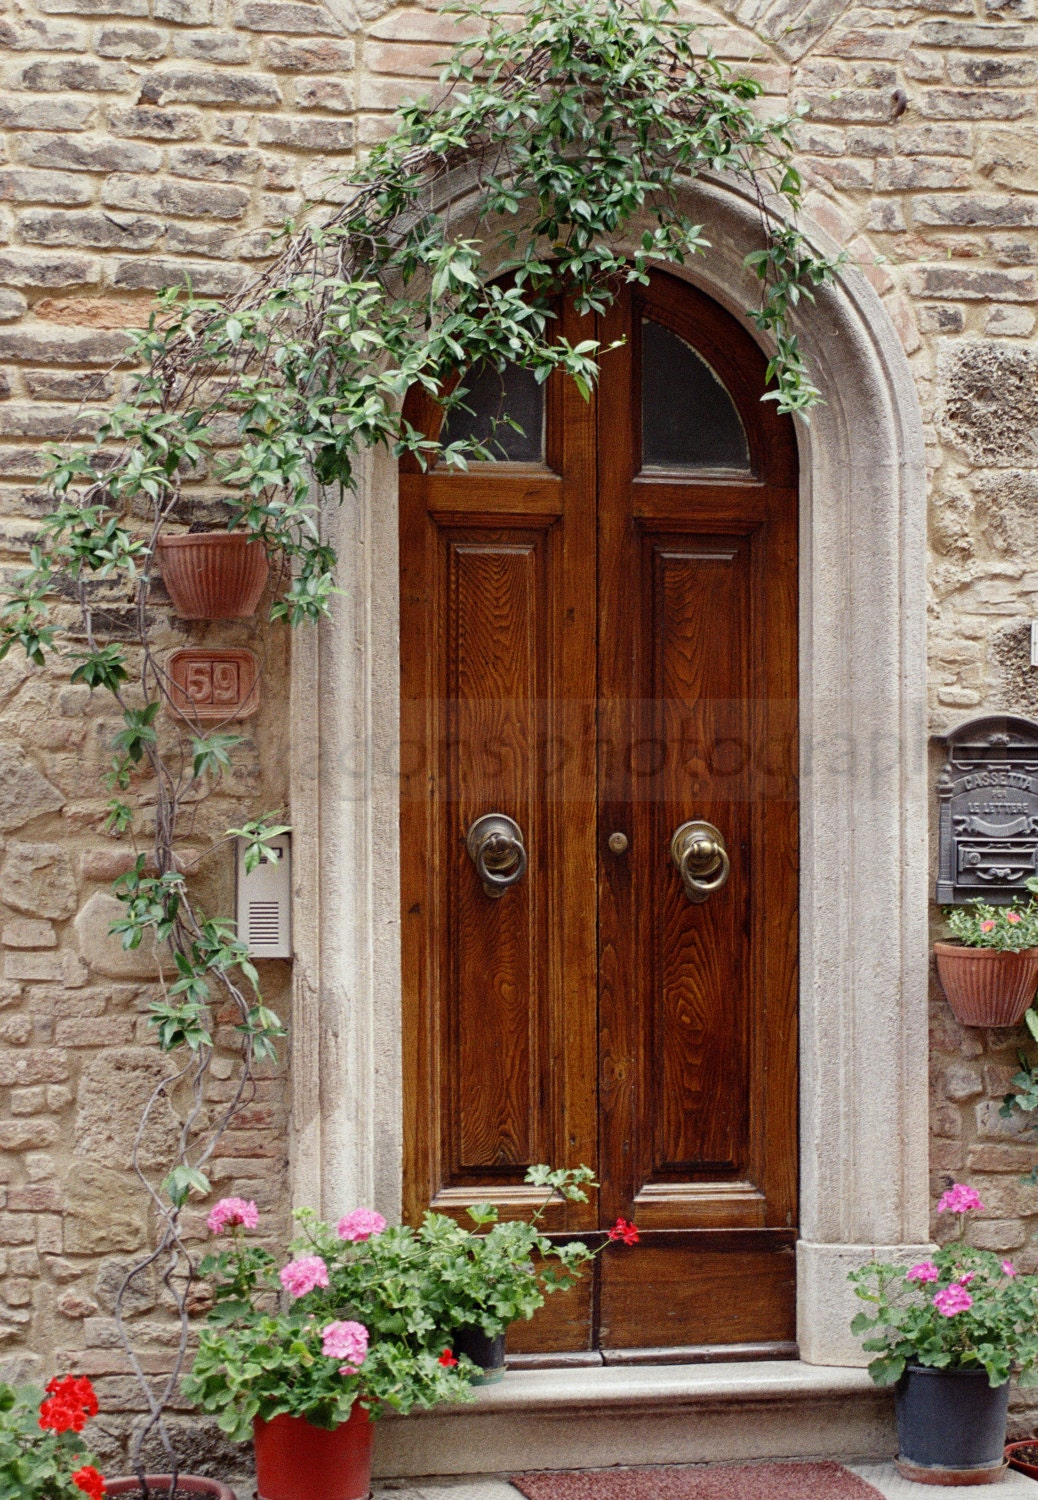 1500 #A82376 Italian Door Art European Photography Wood Doors By Ninedragons pic European Exterior Doors 46111038